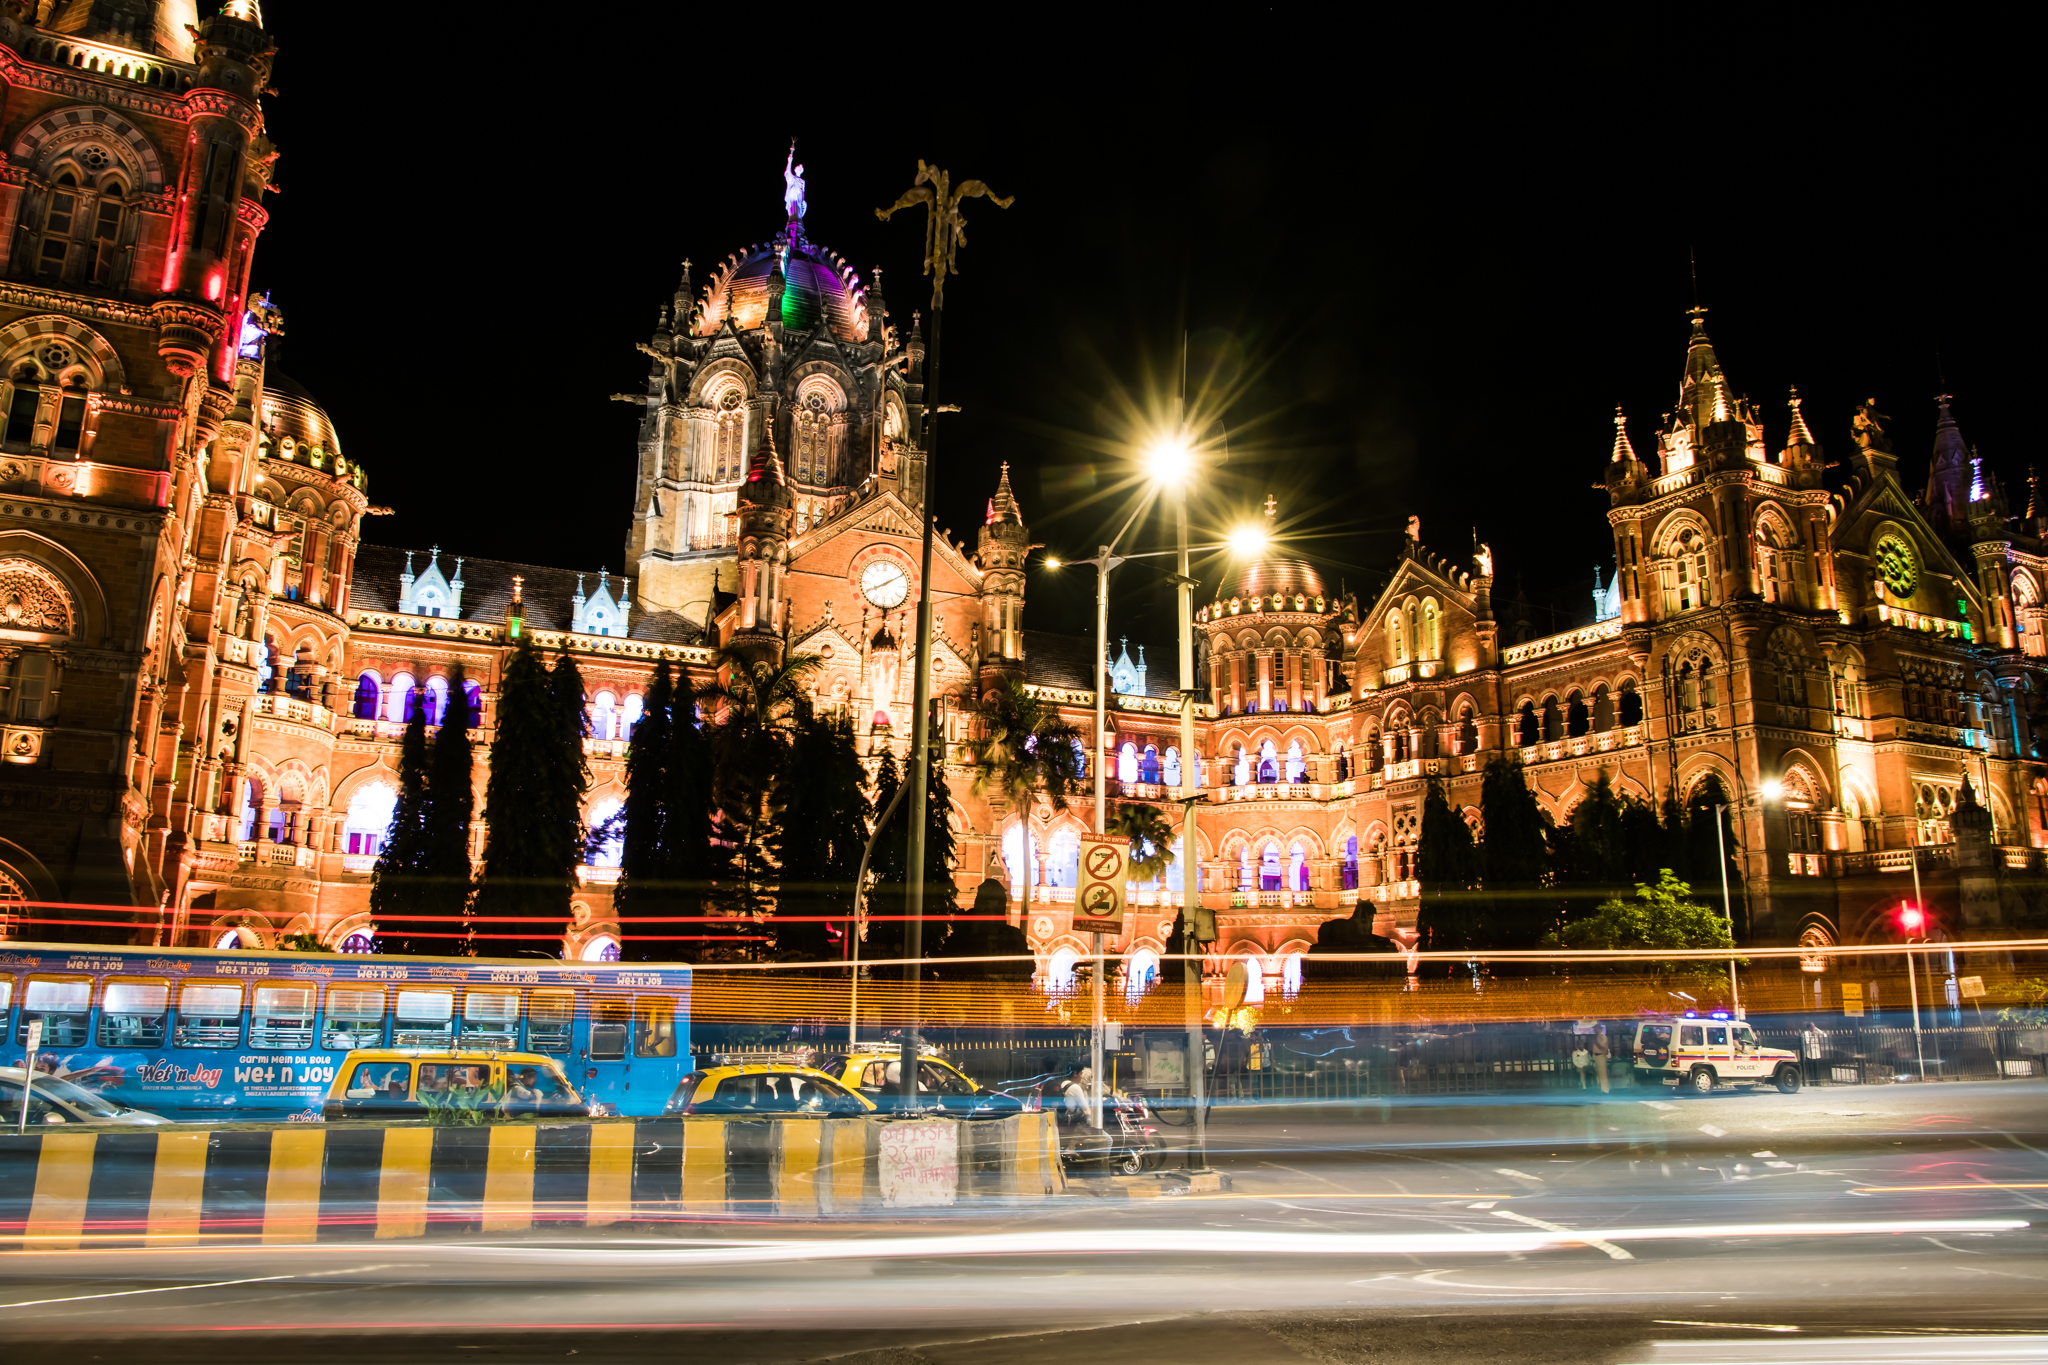 Chhatrapati Shivaji Terminus facade illuminated at night